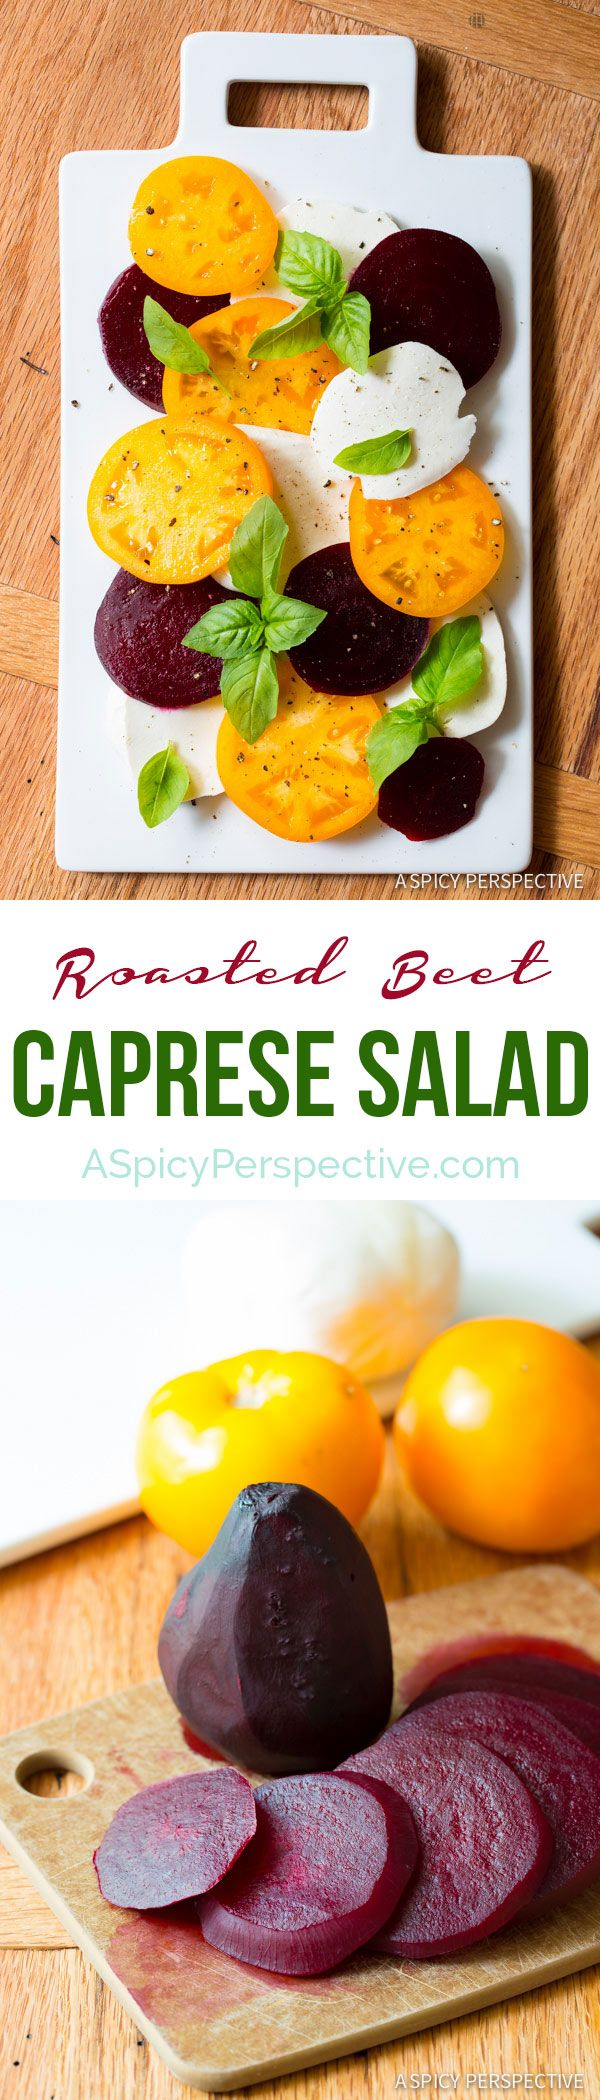 Simple, yet Dazzling Caprese Salad Recipe with Roasted Beets and Garlic Vinaigrette on ASpicyPerspective.com #salad #caprese